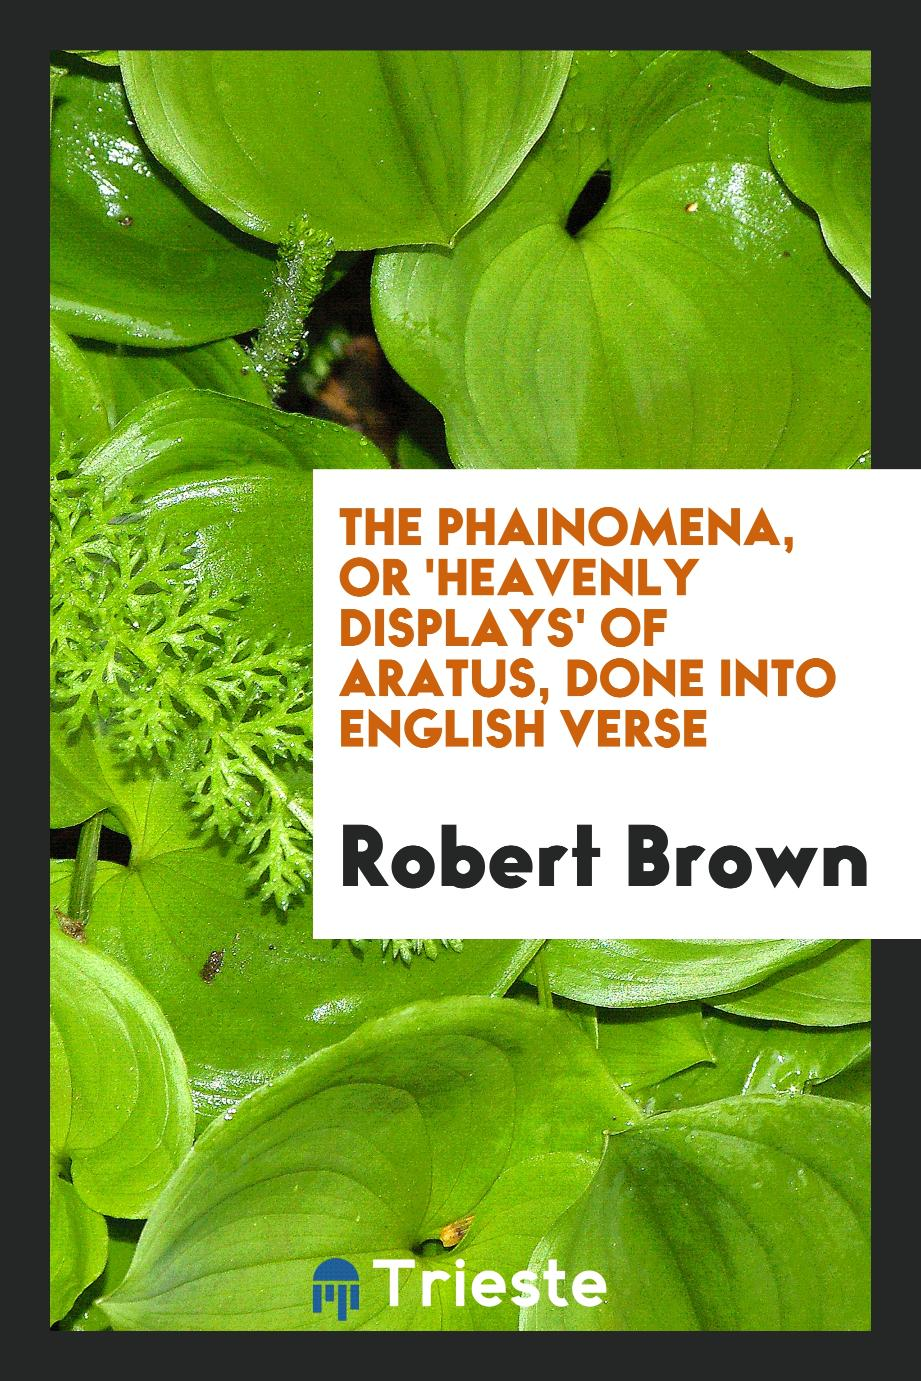 The Phainomena, or 'Heavenly Displays' of Aratus, Done into English Verse